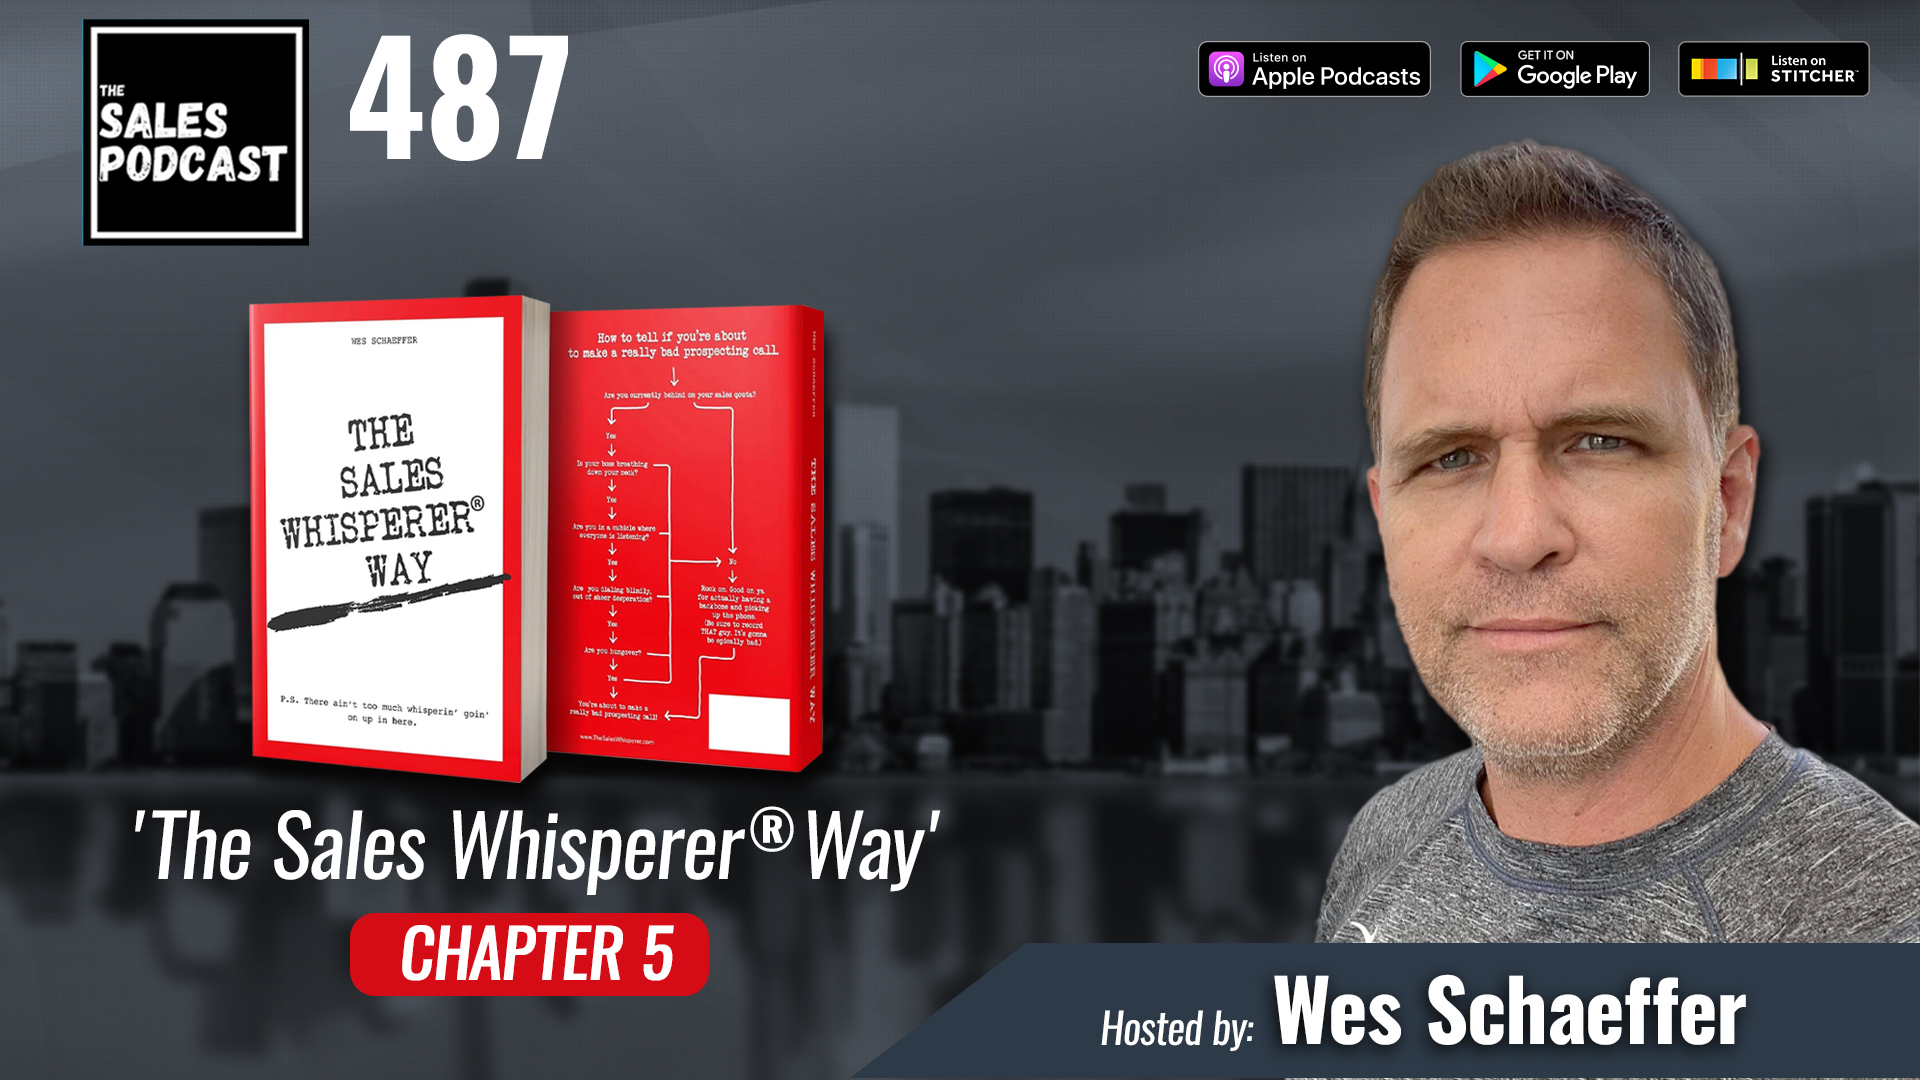 'The Sales Whisperer® Way' Chapter 5 with Wes Schaeffer, The Sales Whisperer®